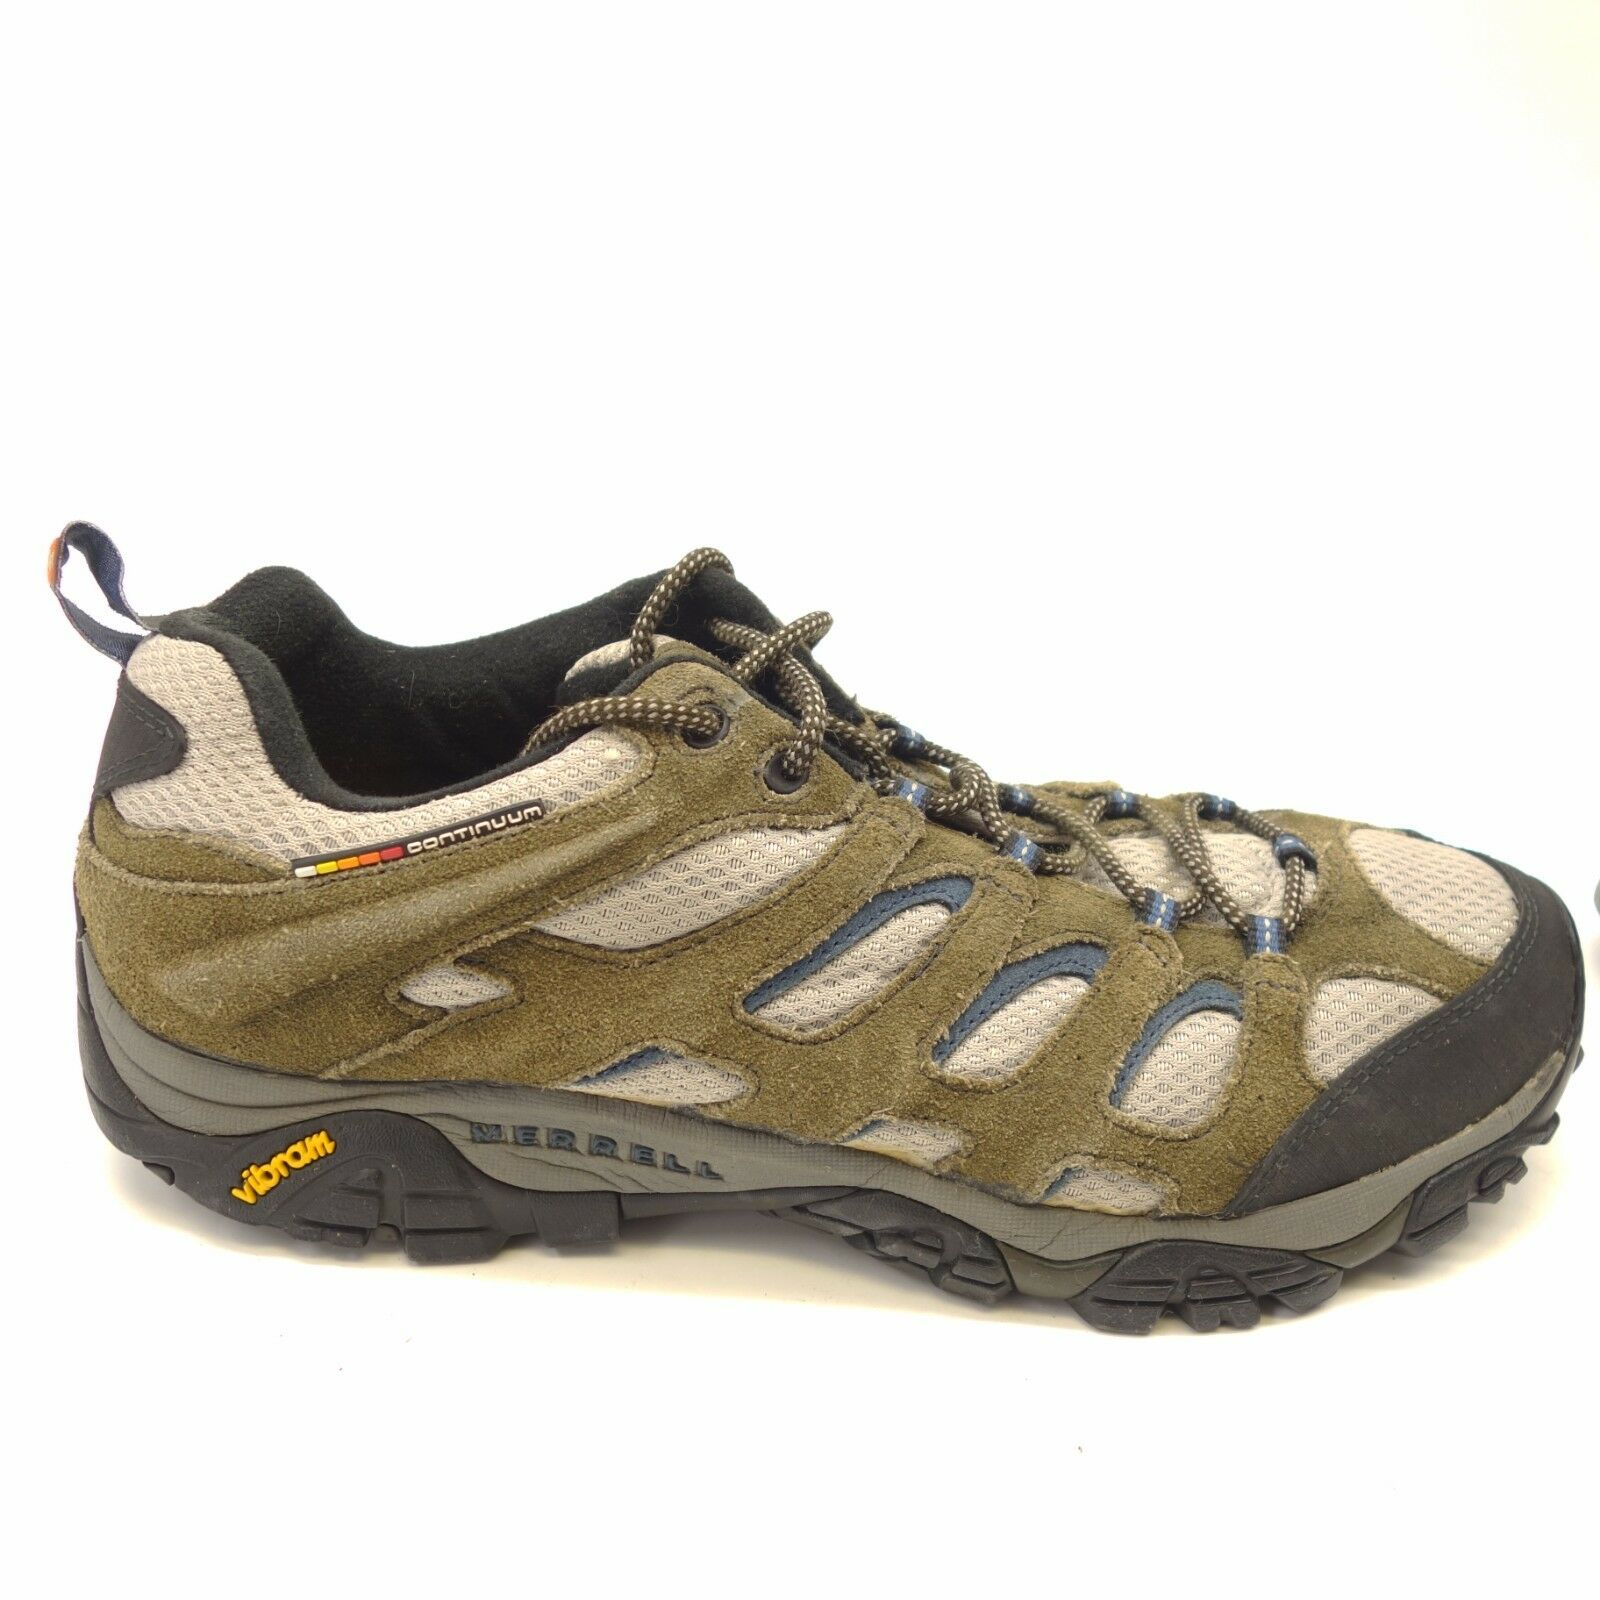 Merrell Mens Moab 2 Low Ventilator Athletic Support Hiking Trail schuhe Größe 12